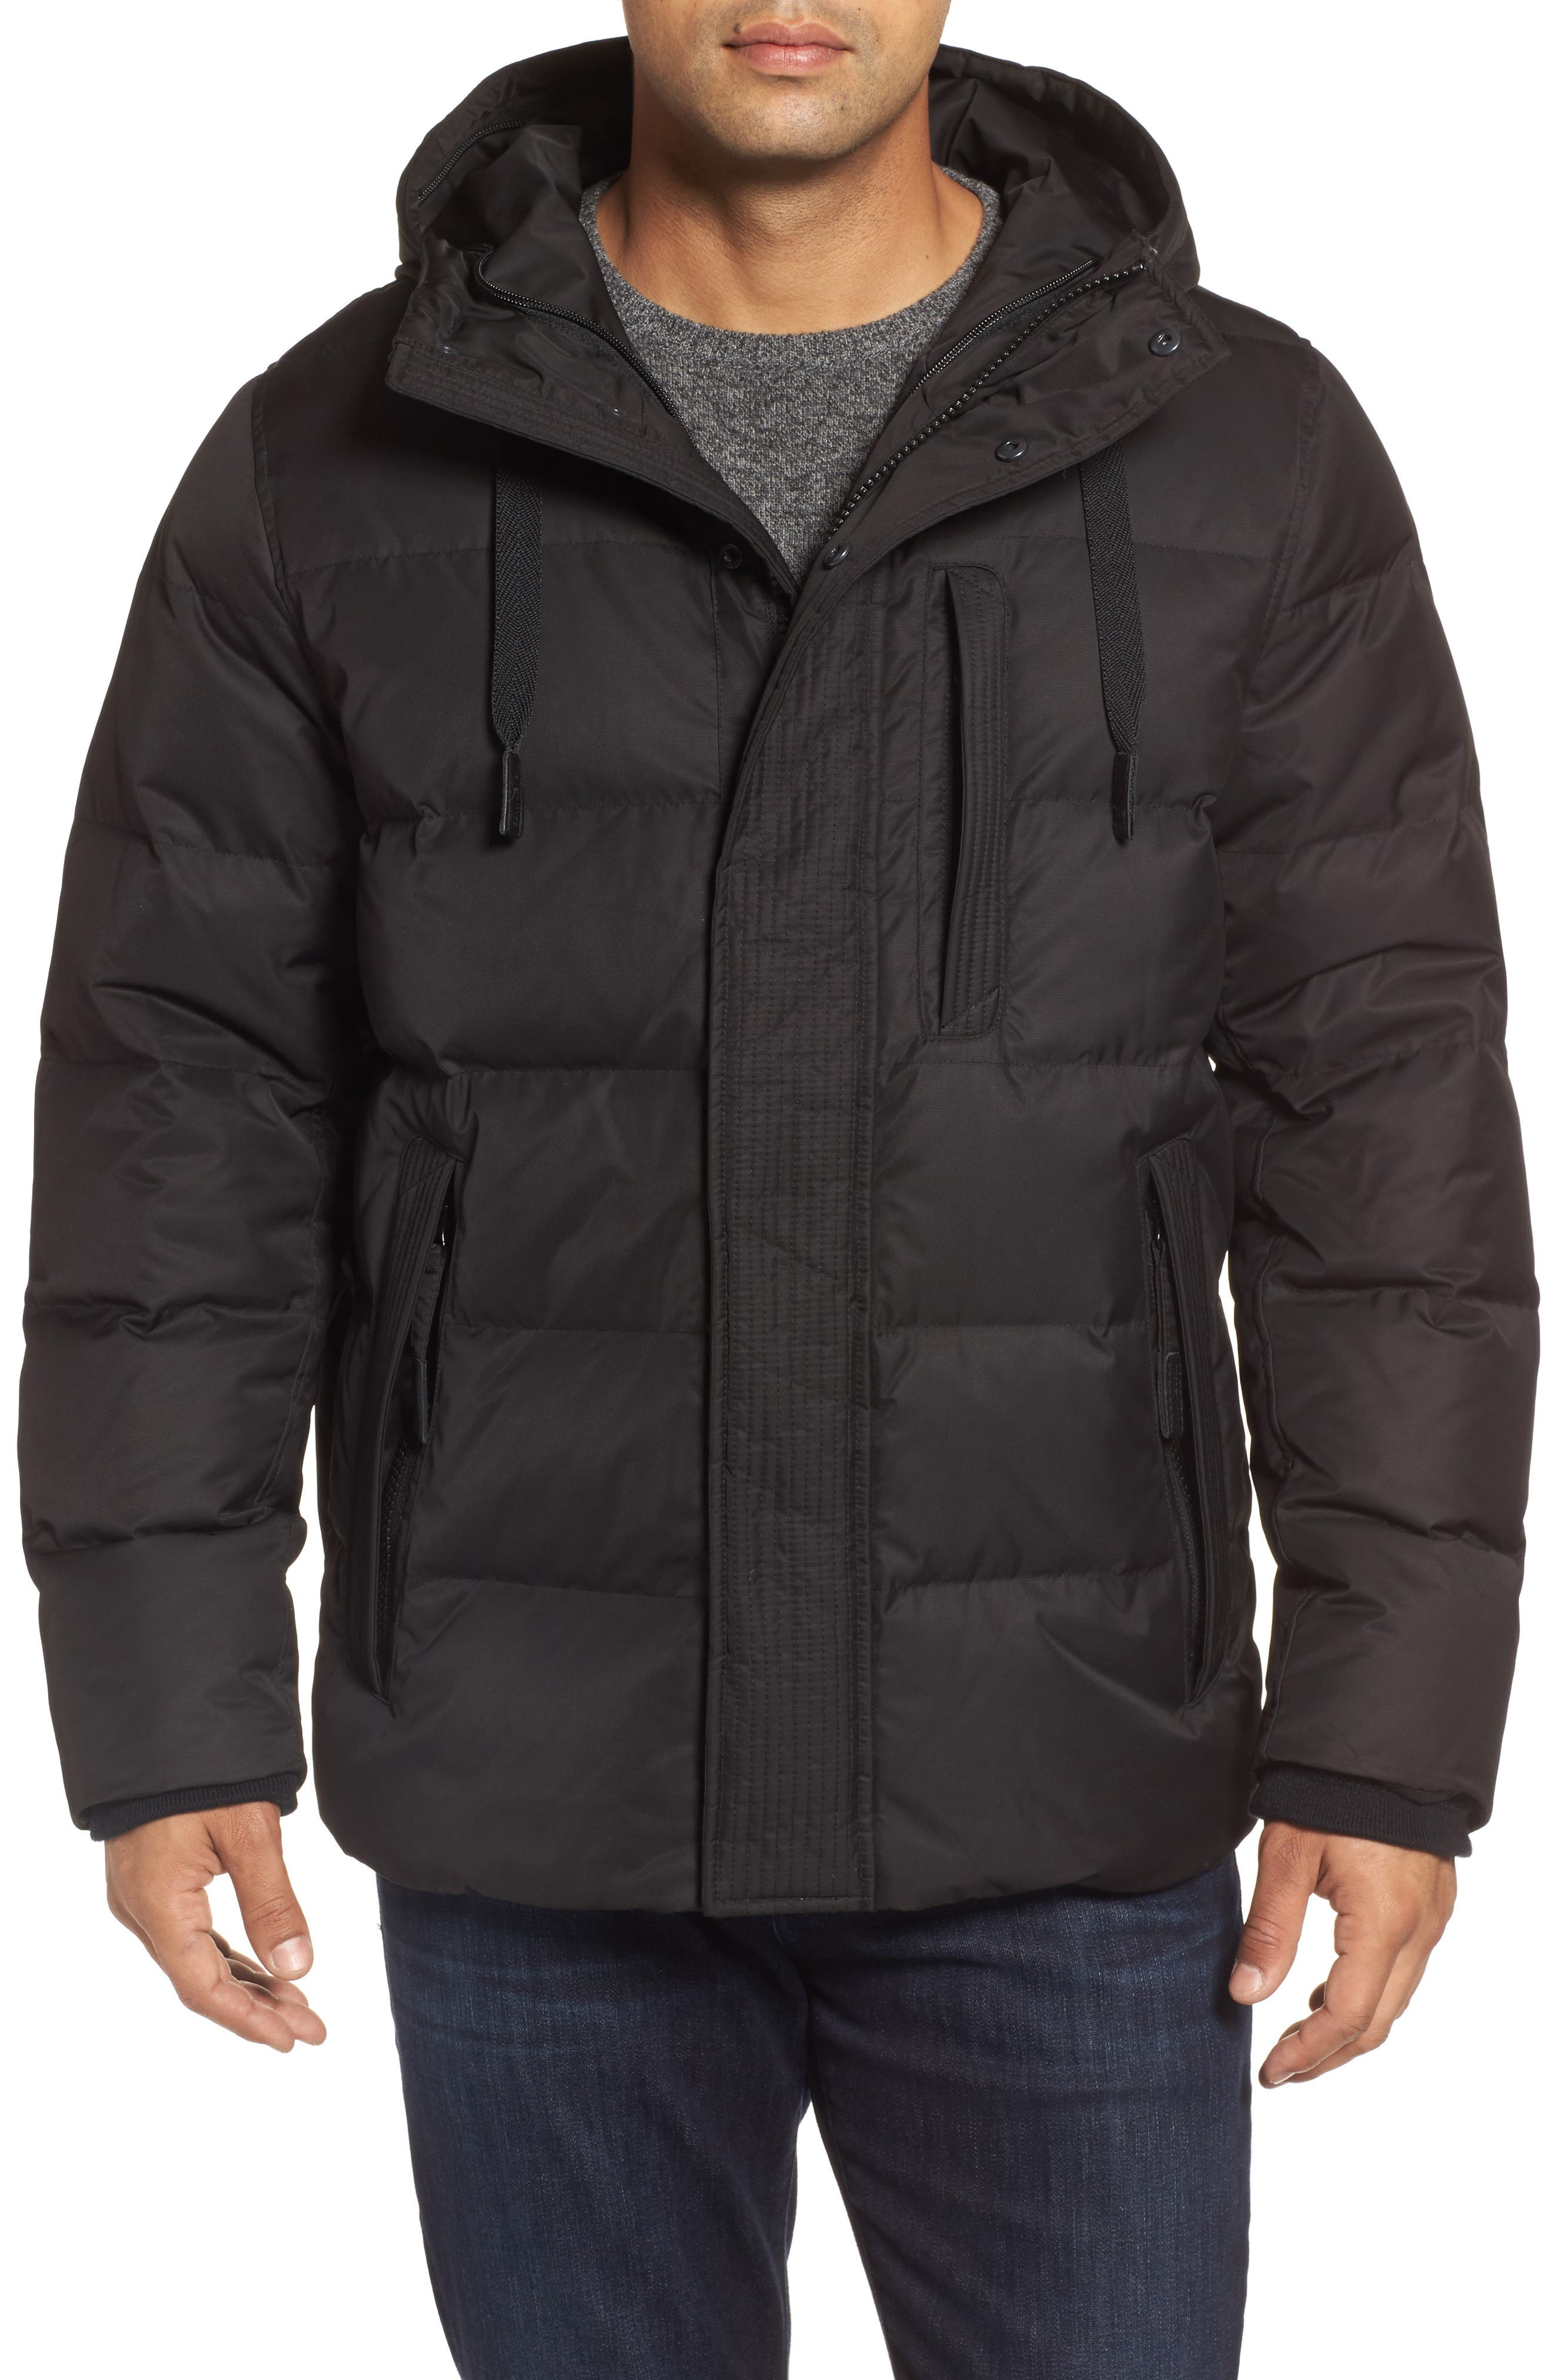 Groton Slim Down Jacket with Faux Shearling Lining,                             Alternate thumbnail 4, color,                             Black